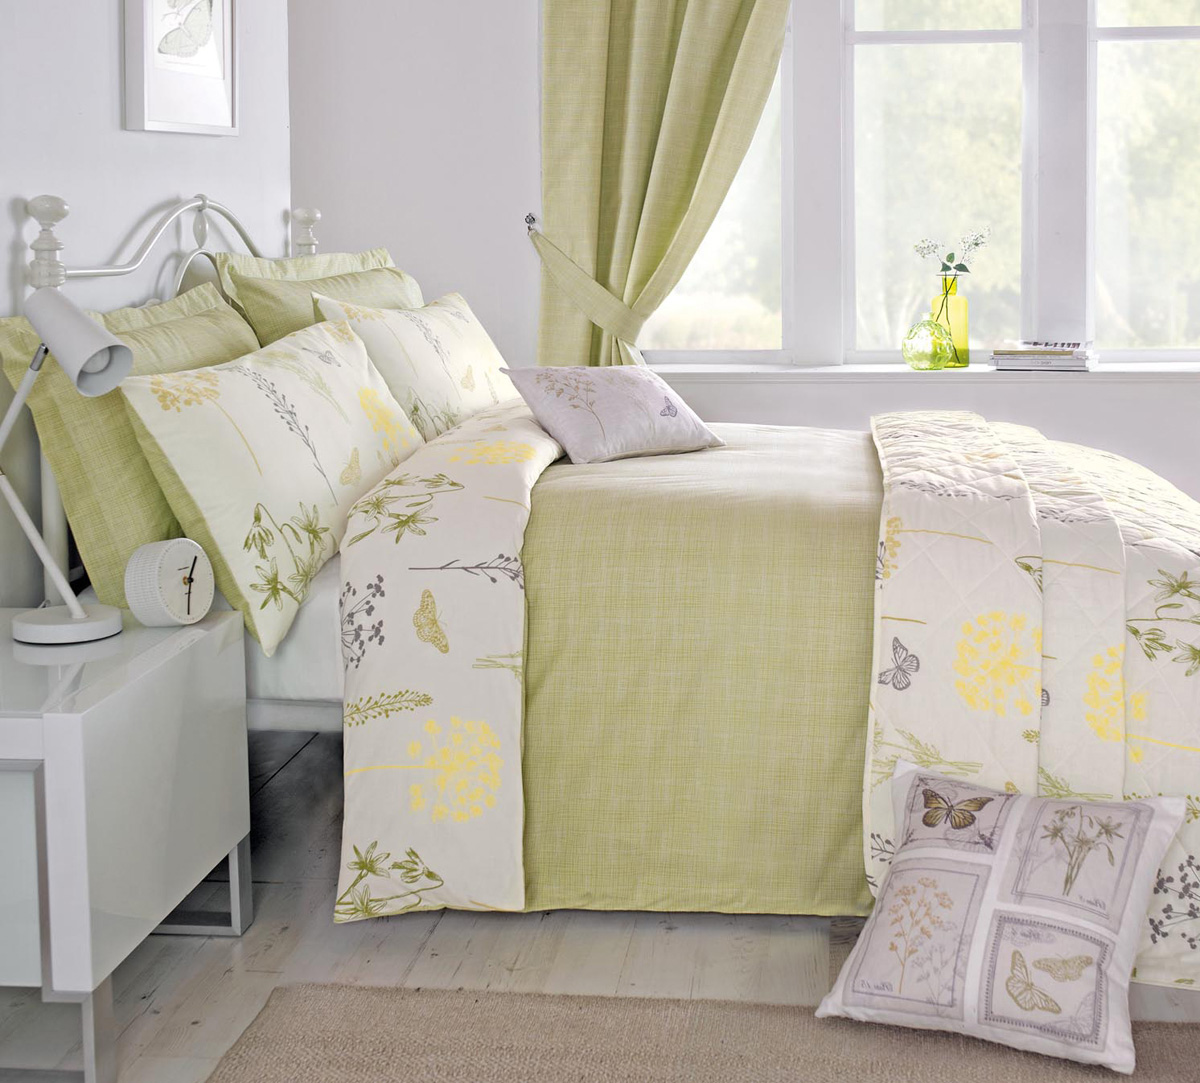 Botanique Bedding Set - Botanique Bedding Set In Green Free UK Delivery  Terrys Fabrics - Green Bedding Design Your Life